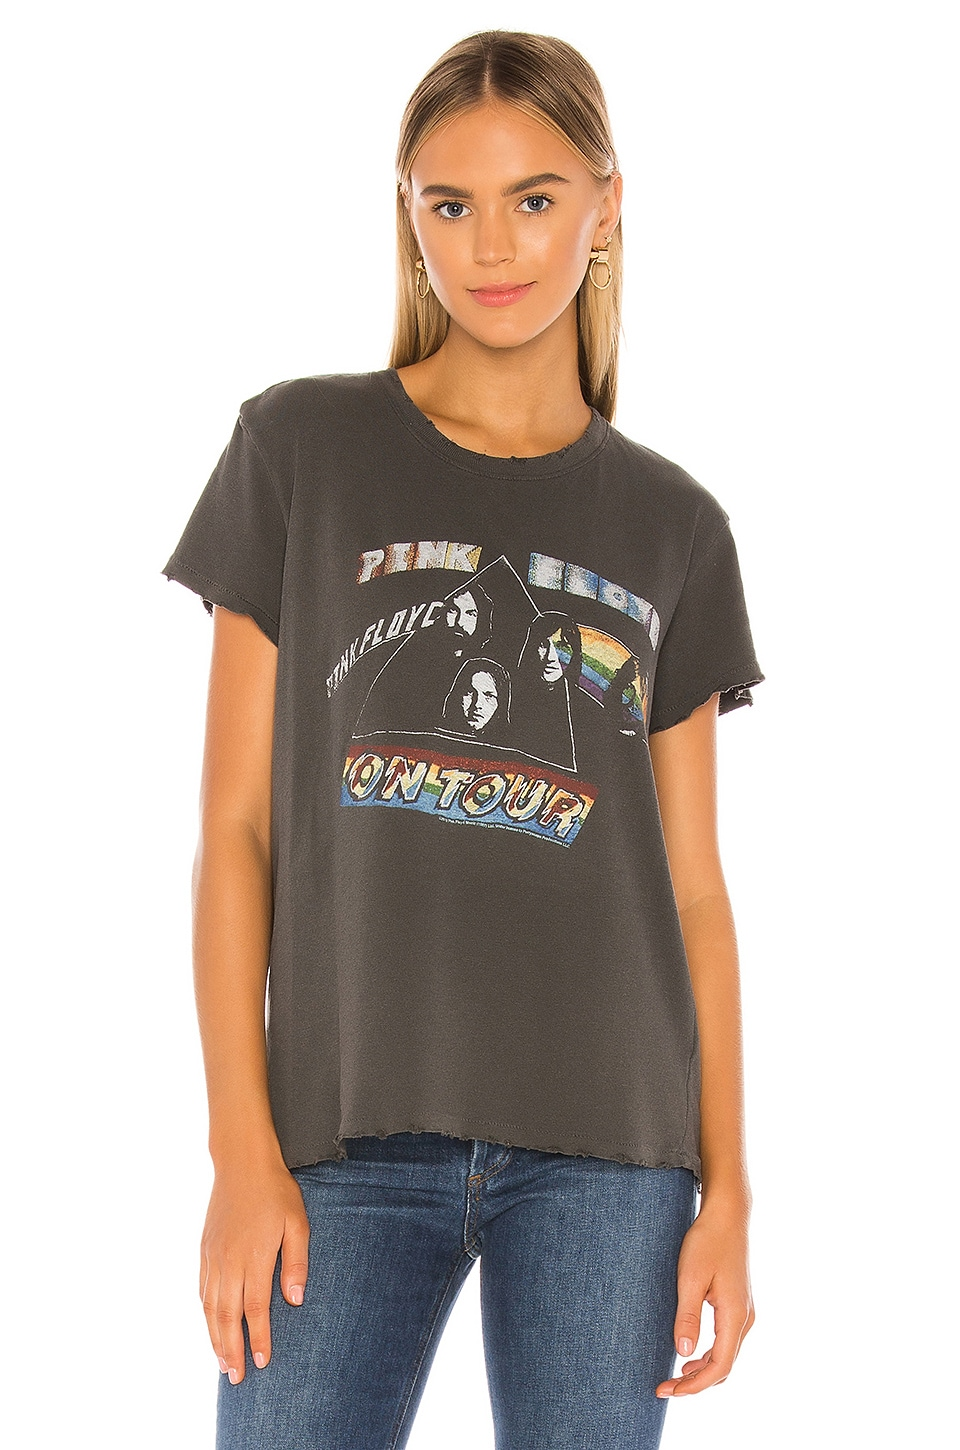 Pink Floyd On Tour Tee, view 2, click to view large image.